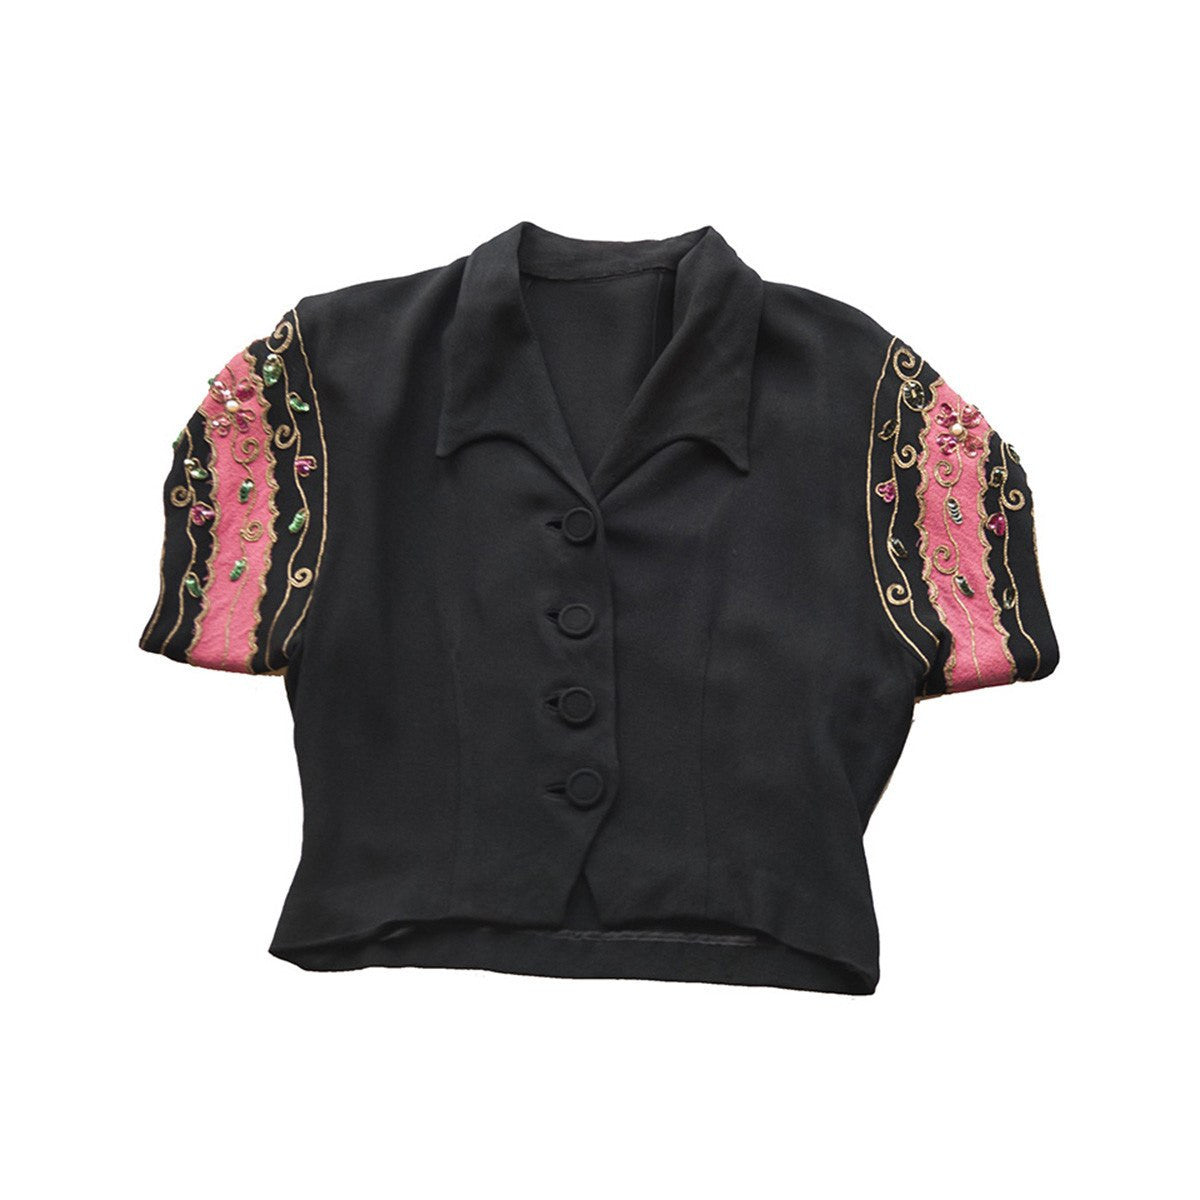 1940s Bolero Style Blouse with Rhinestones in Pink & Black Silk Crepe de Chine